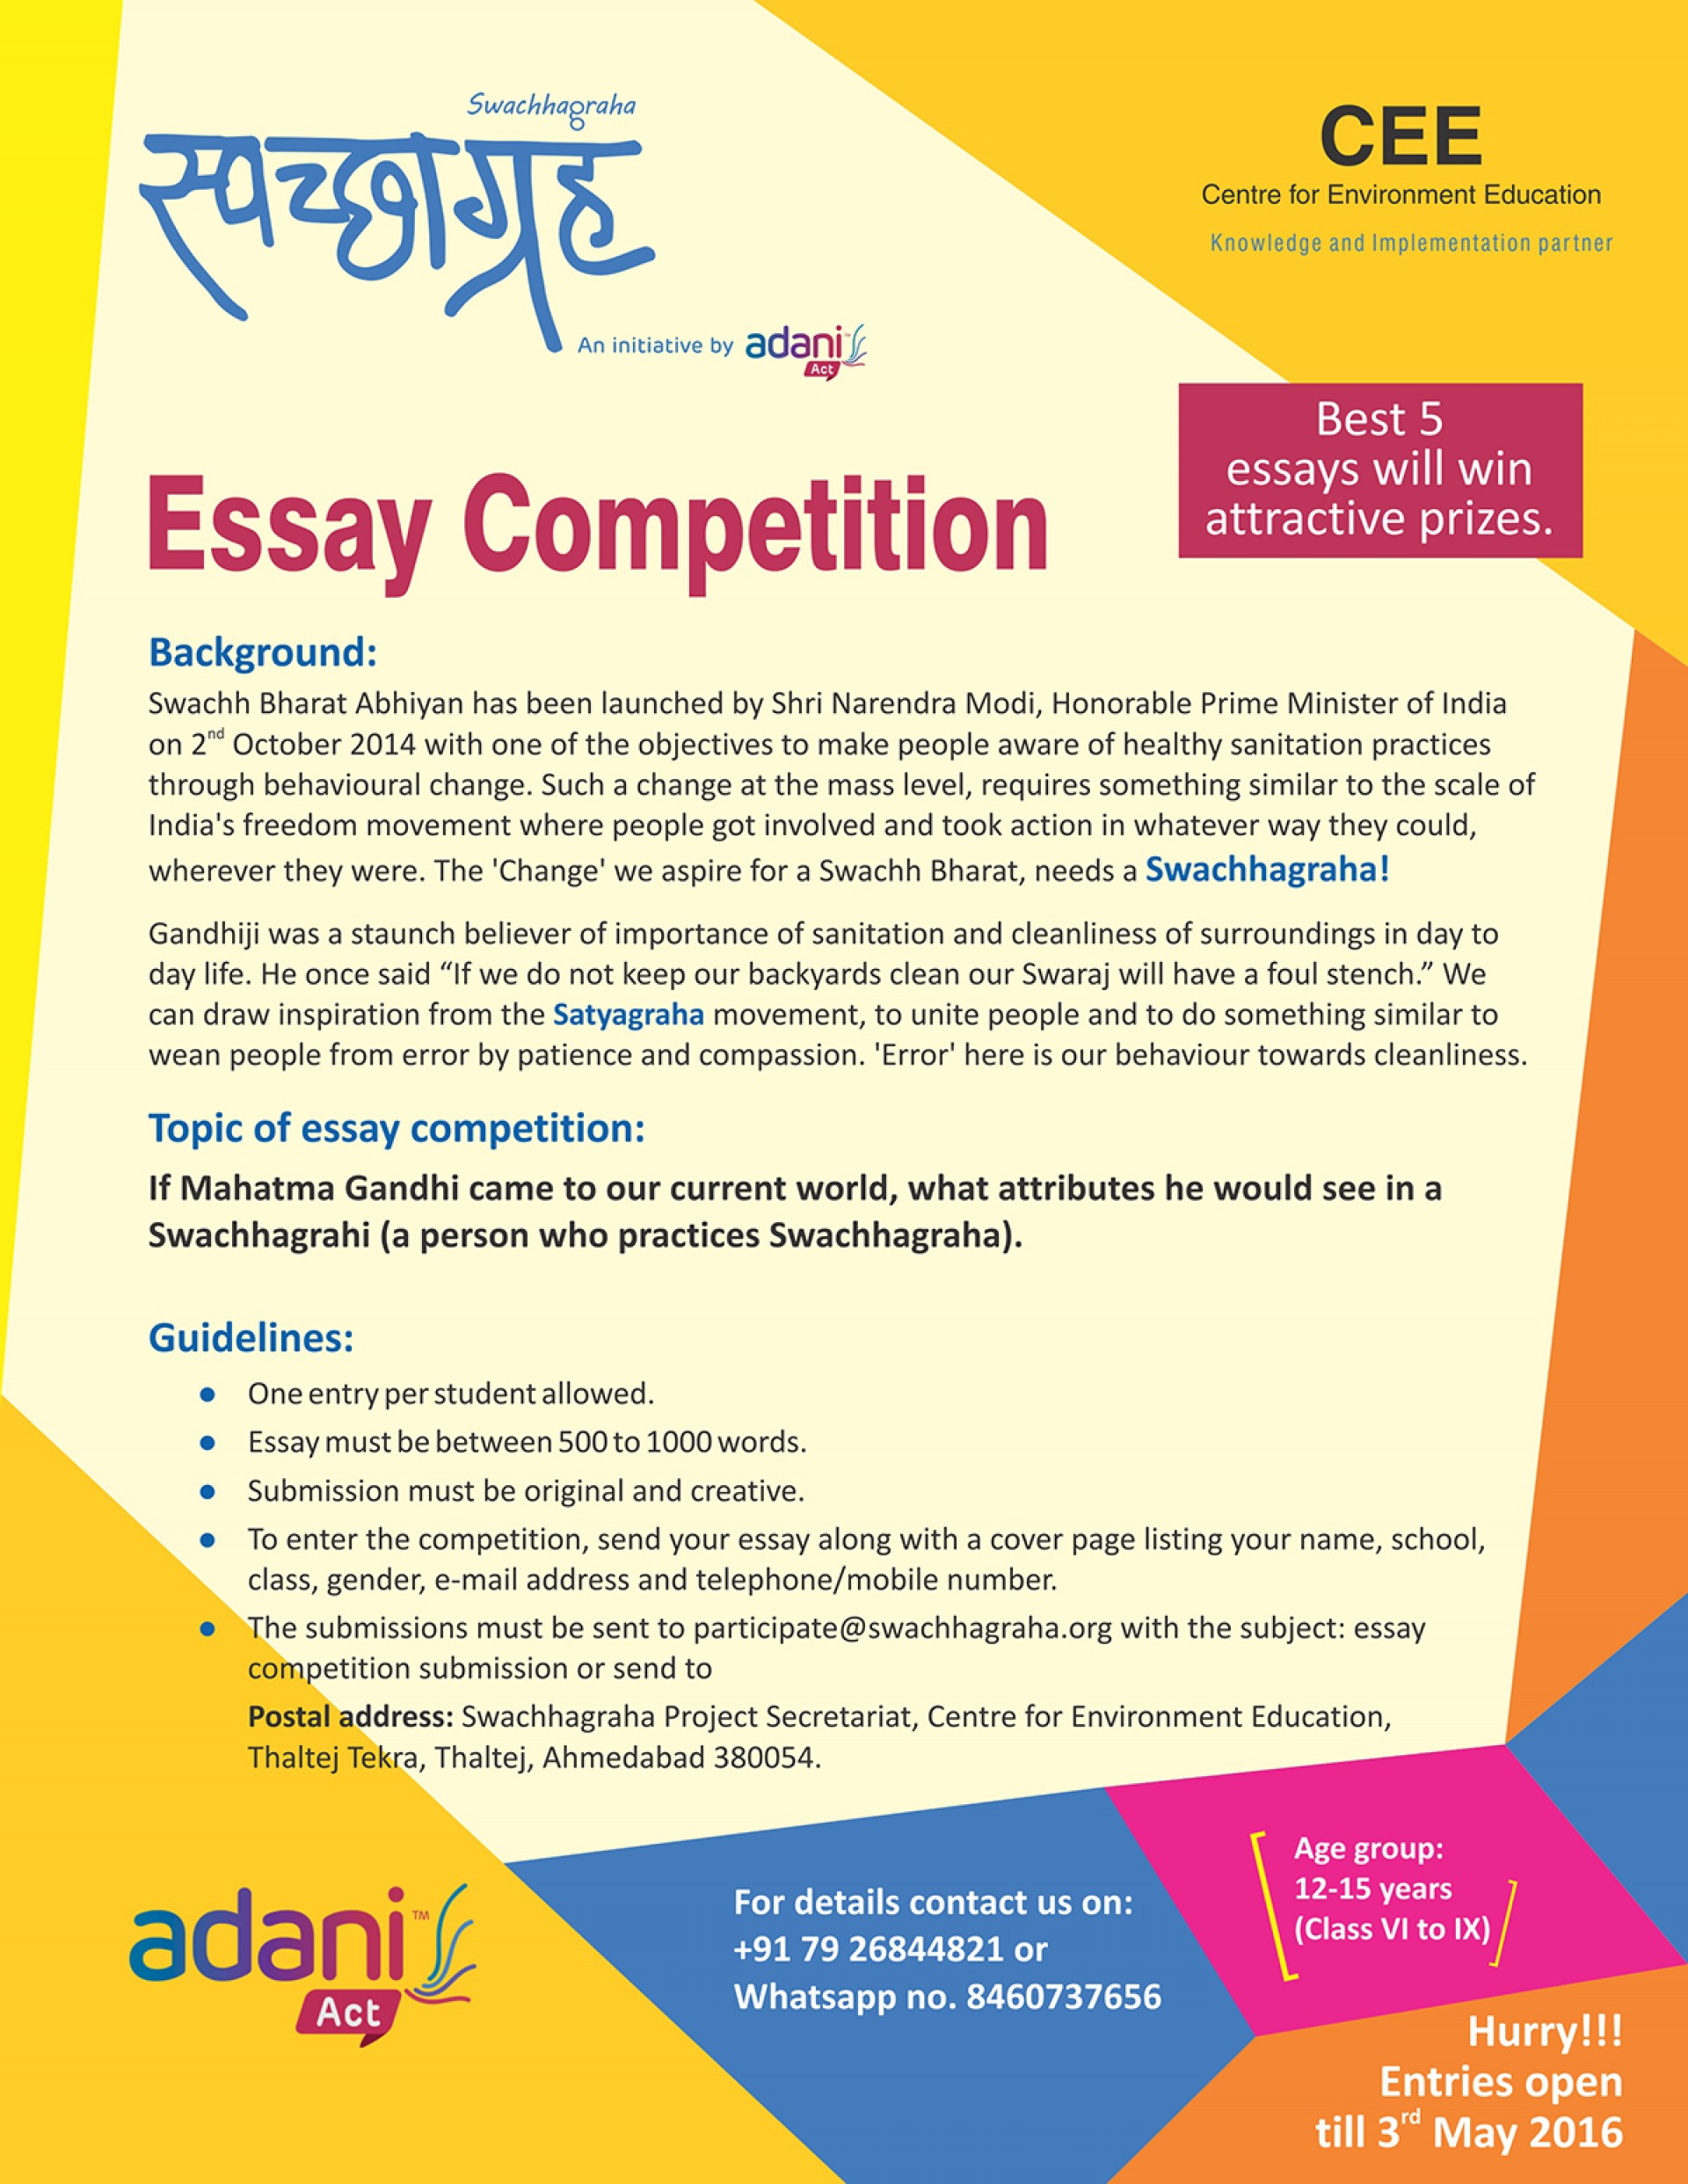 011 20180129171946essay20competition Essay About Cleanliness In School Phenomenal Writing On And Hygiene Practices Persuasive Toilet Its Surrounding 1920